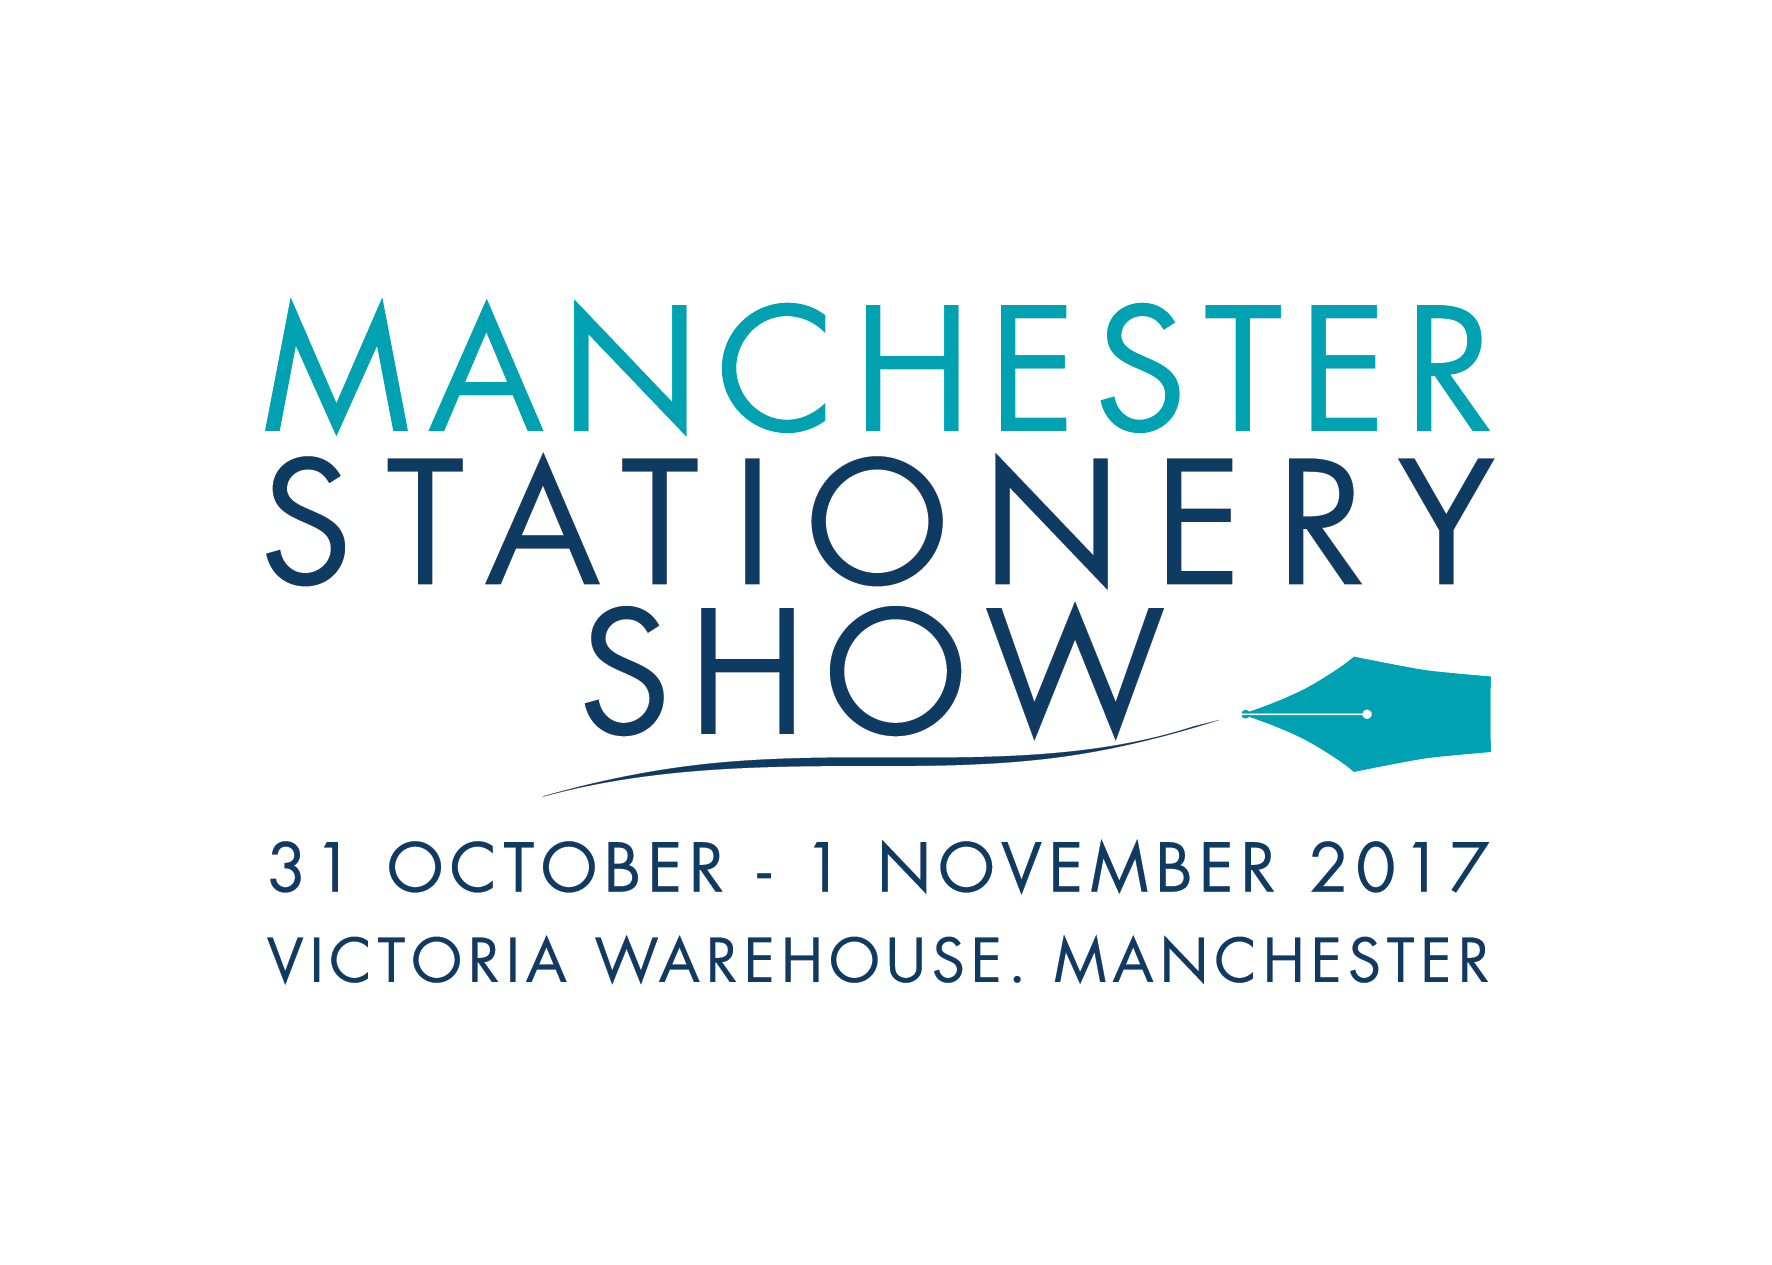 Manchester Stationery Show